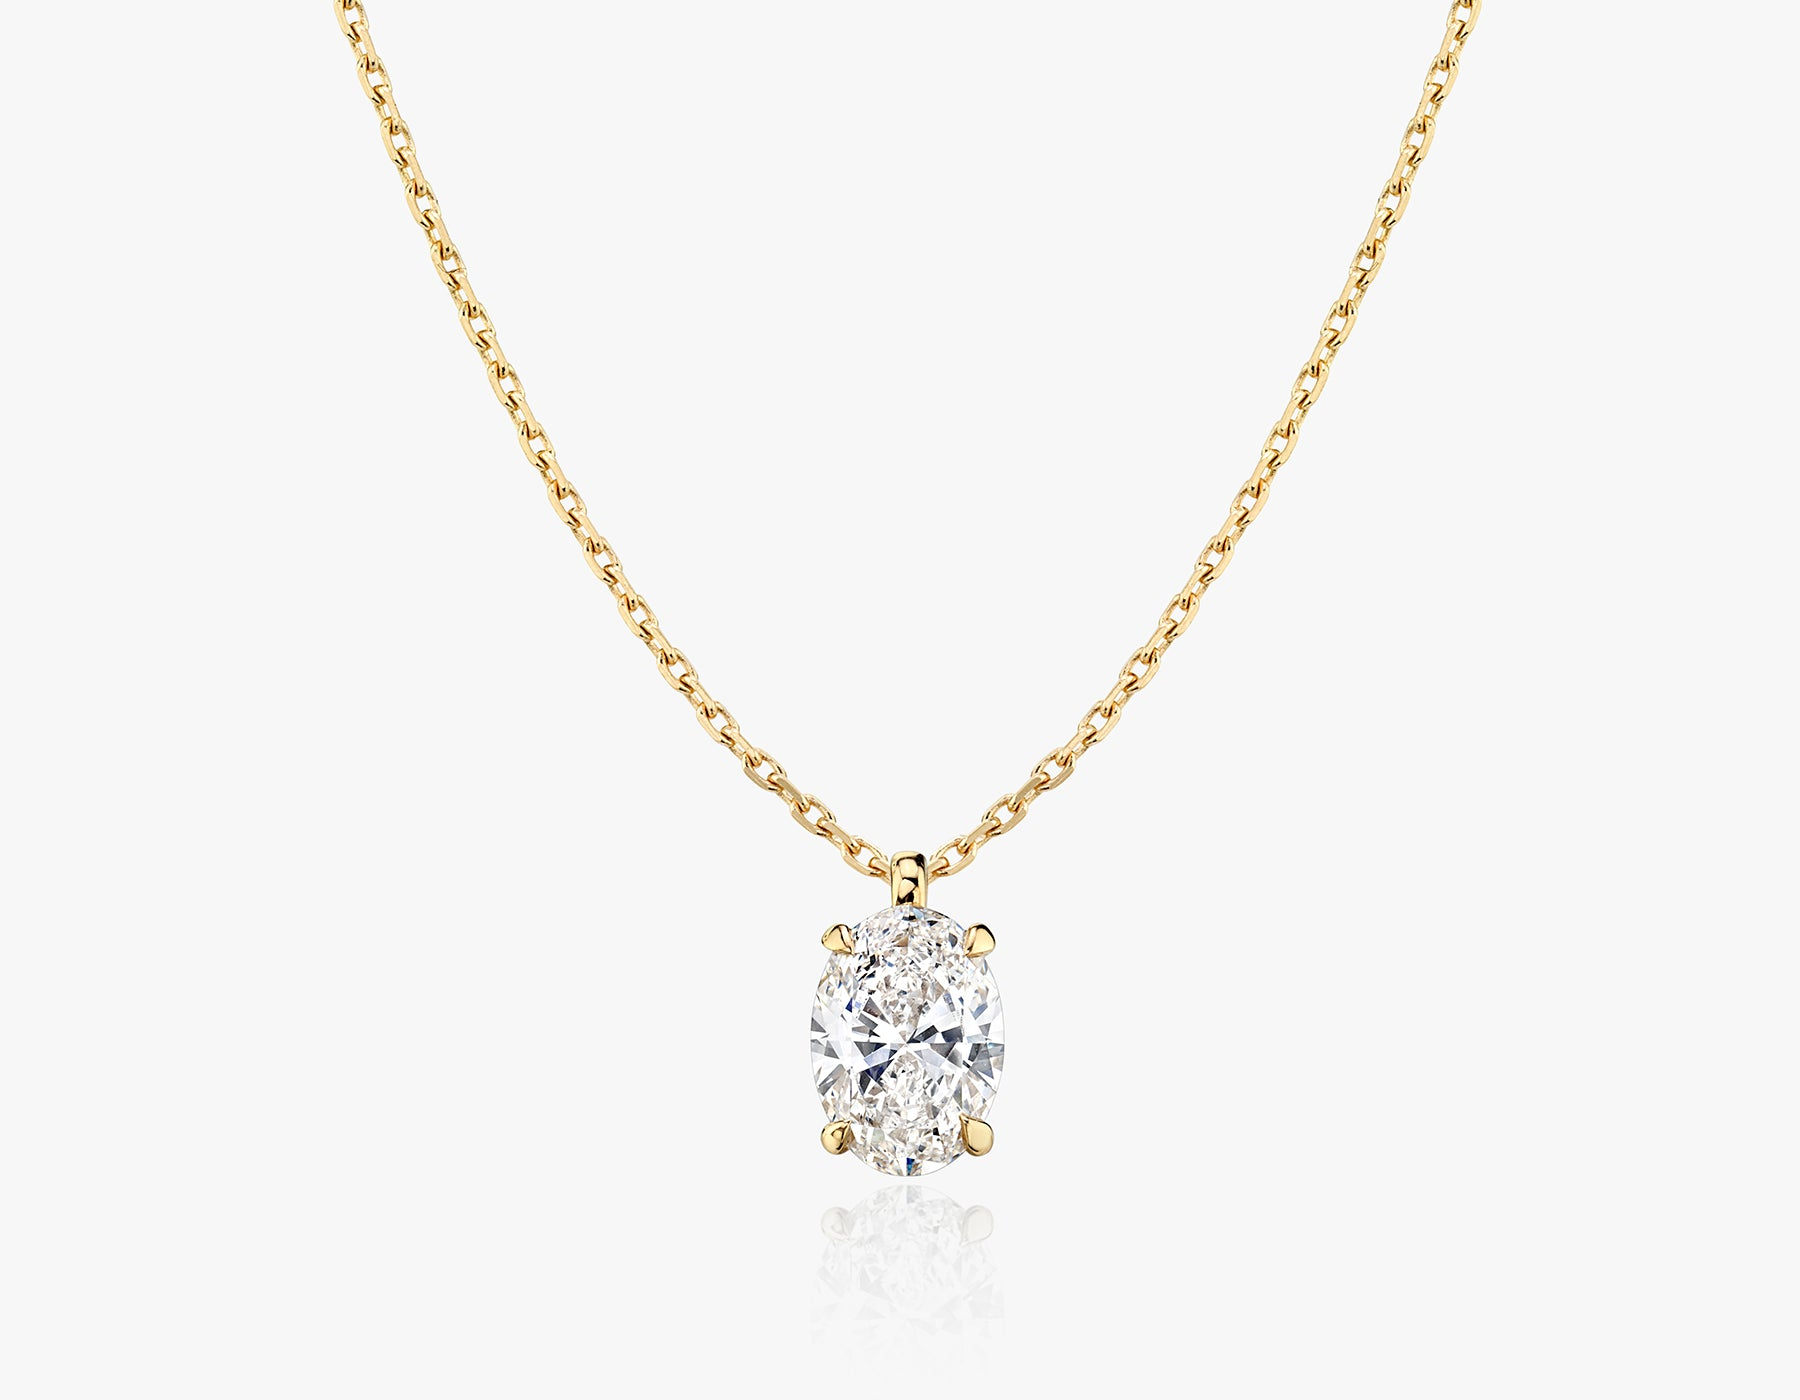 Vrai 1ct Solitaire Oval Created Diamond Pendant Necklace, 14K Yellow Gold